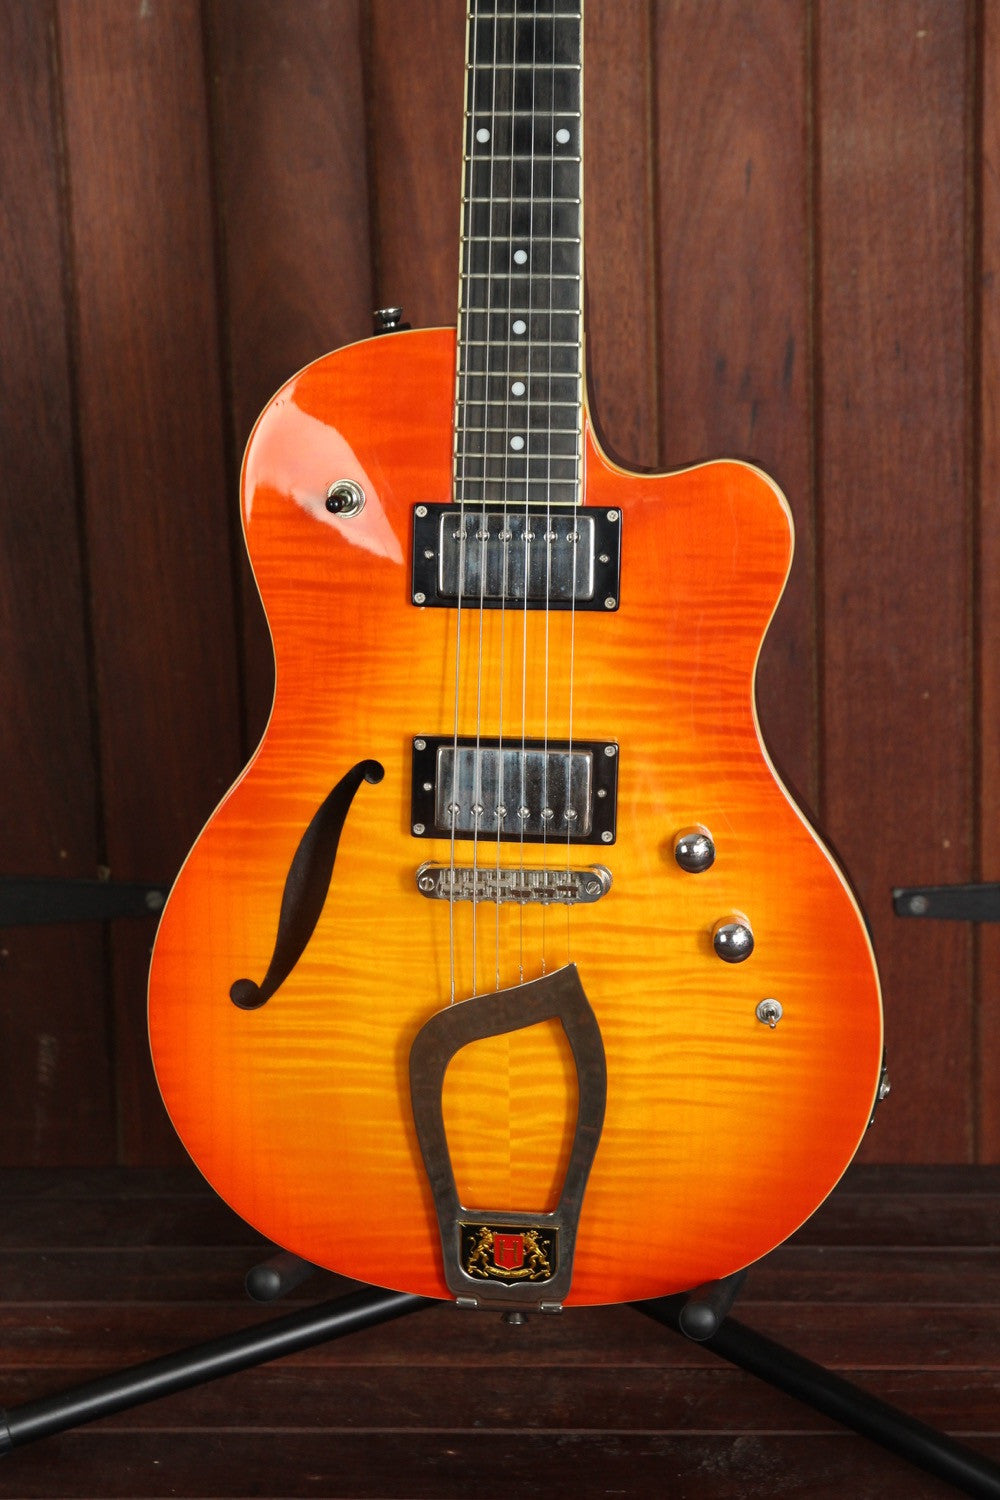 Hagstrom D2F Sunburst Semi-Hollow Electric Guitar